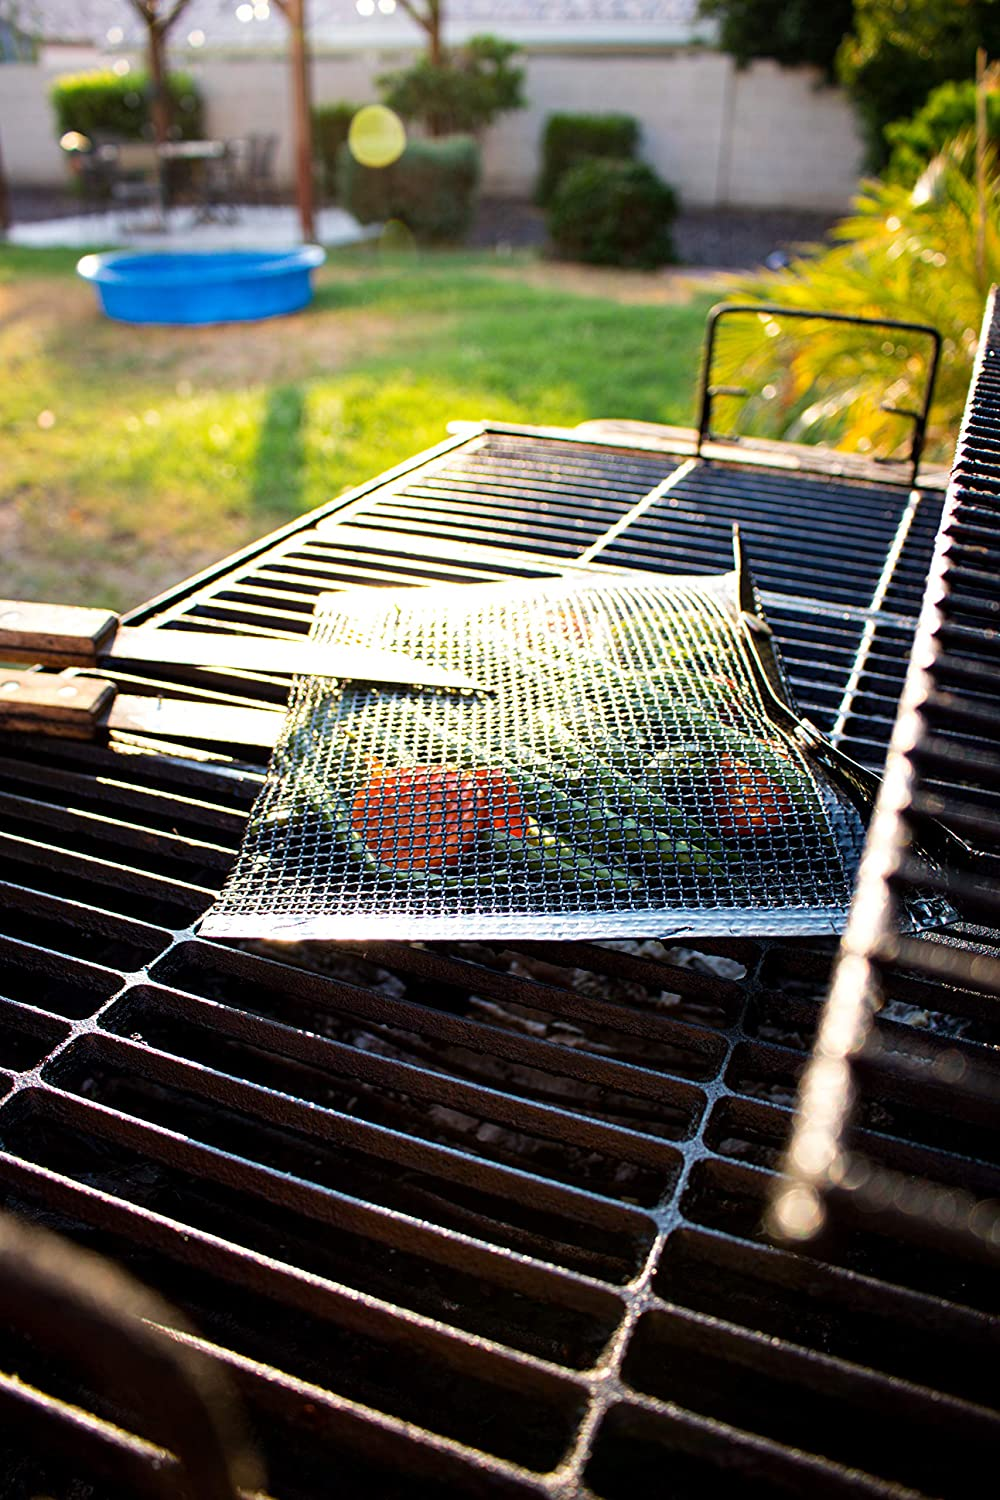 BBQ Grilling Mesh Pouch Bags - 2 Pack